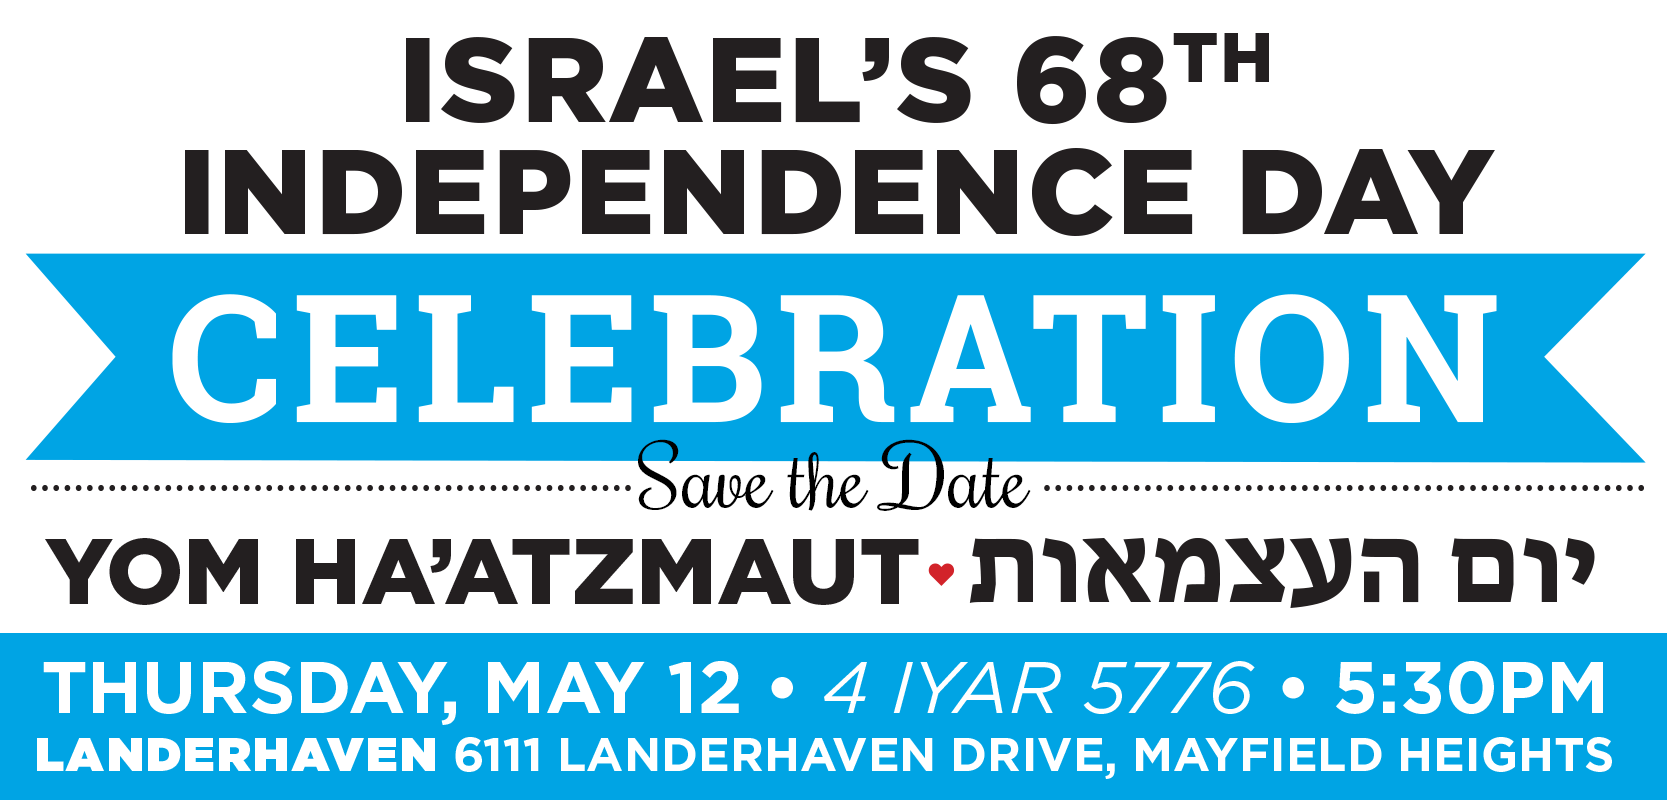 Israel's Independence Day Celebration